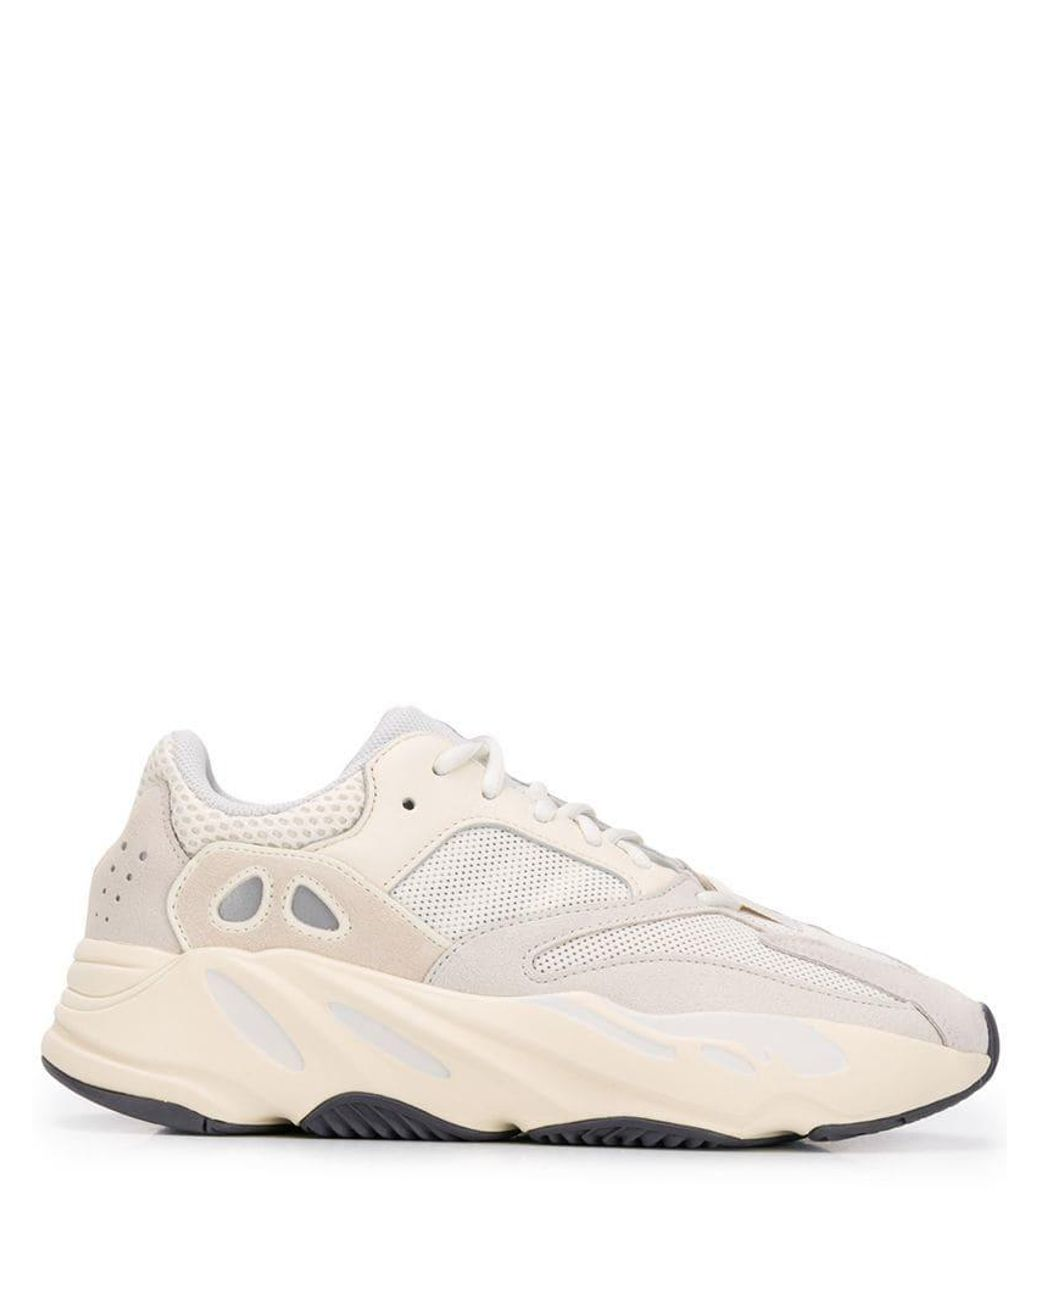 462cee49352f0 Lyst - adidas Yeezy Boost 700 Sneakers for Men